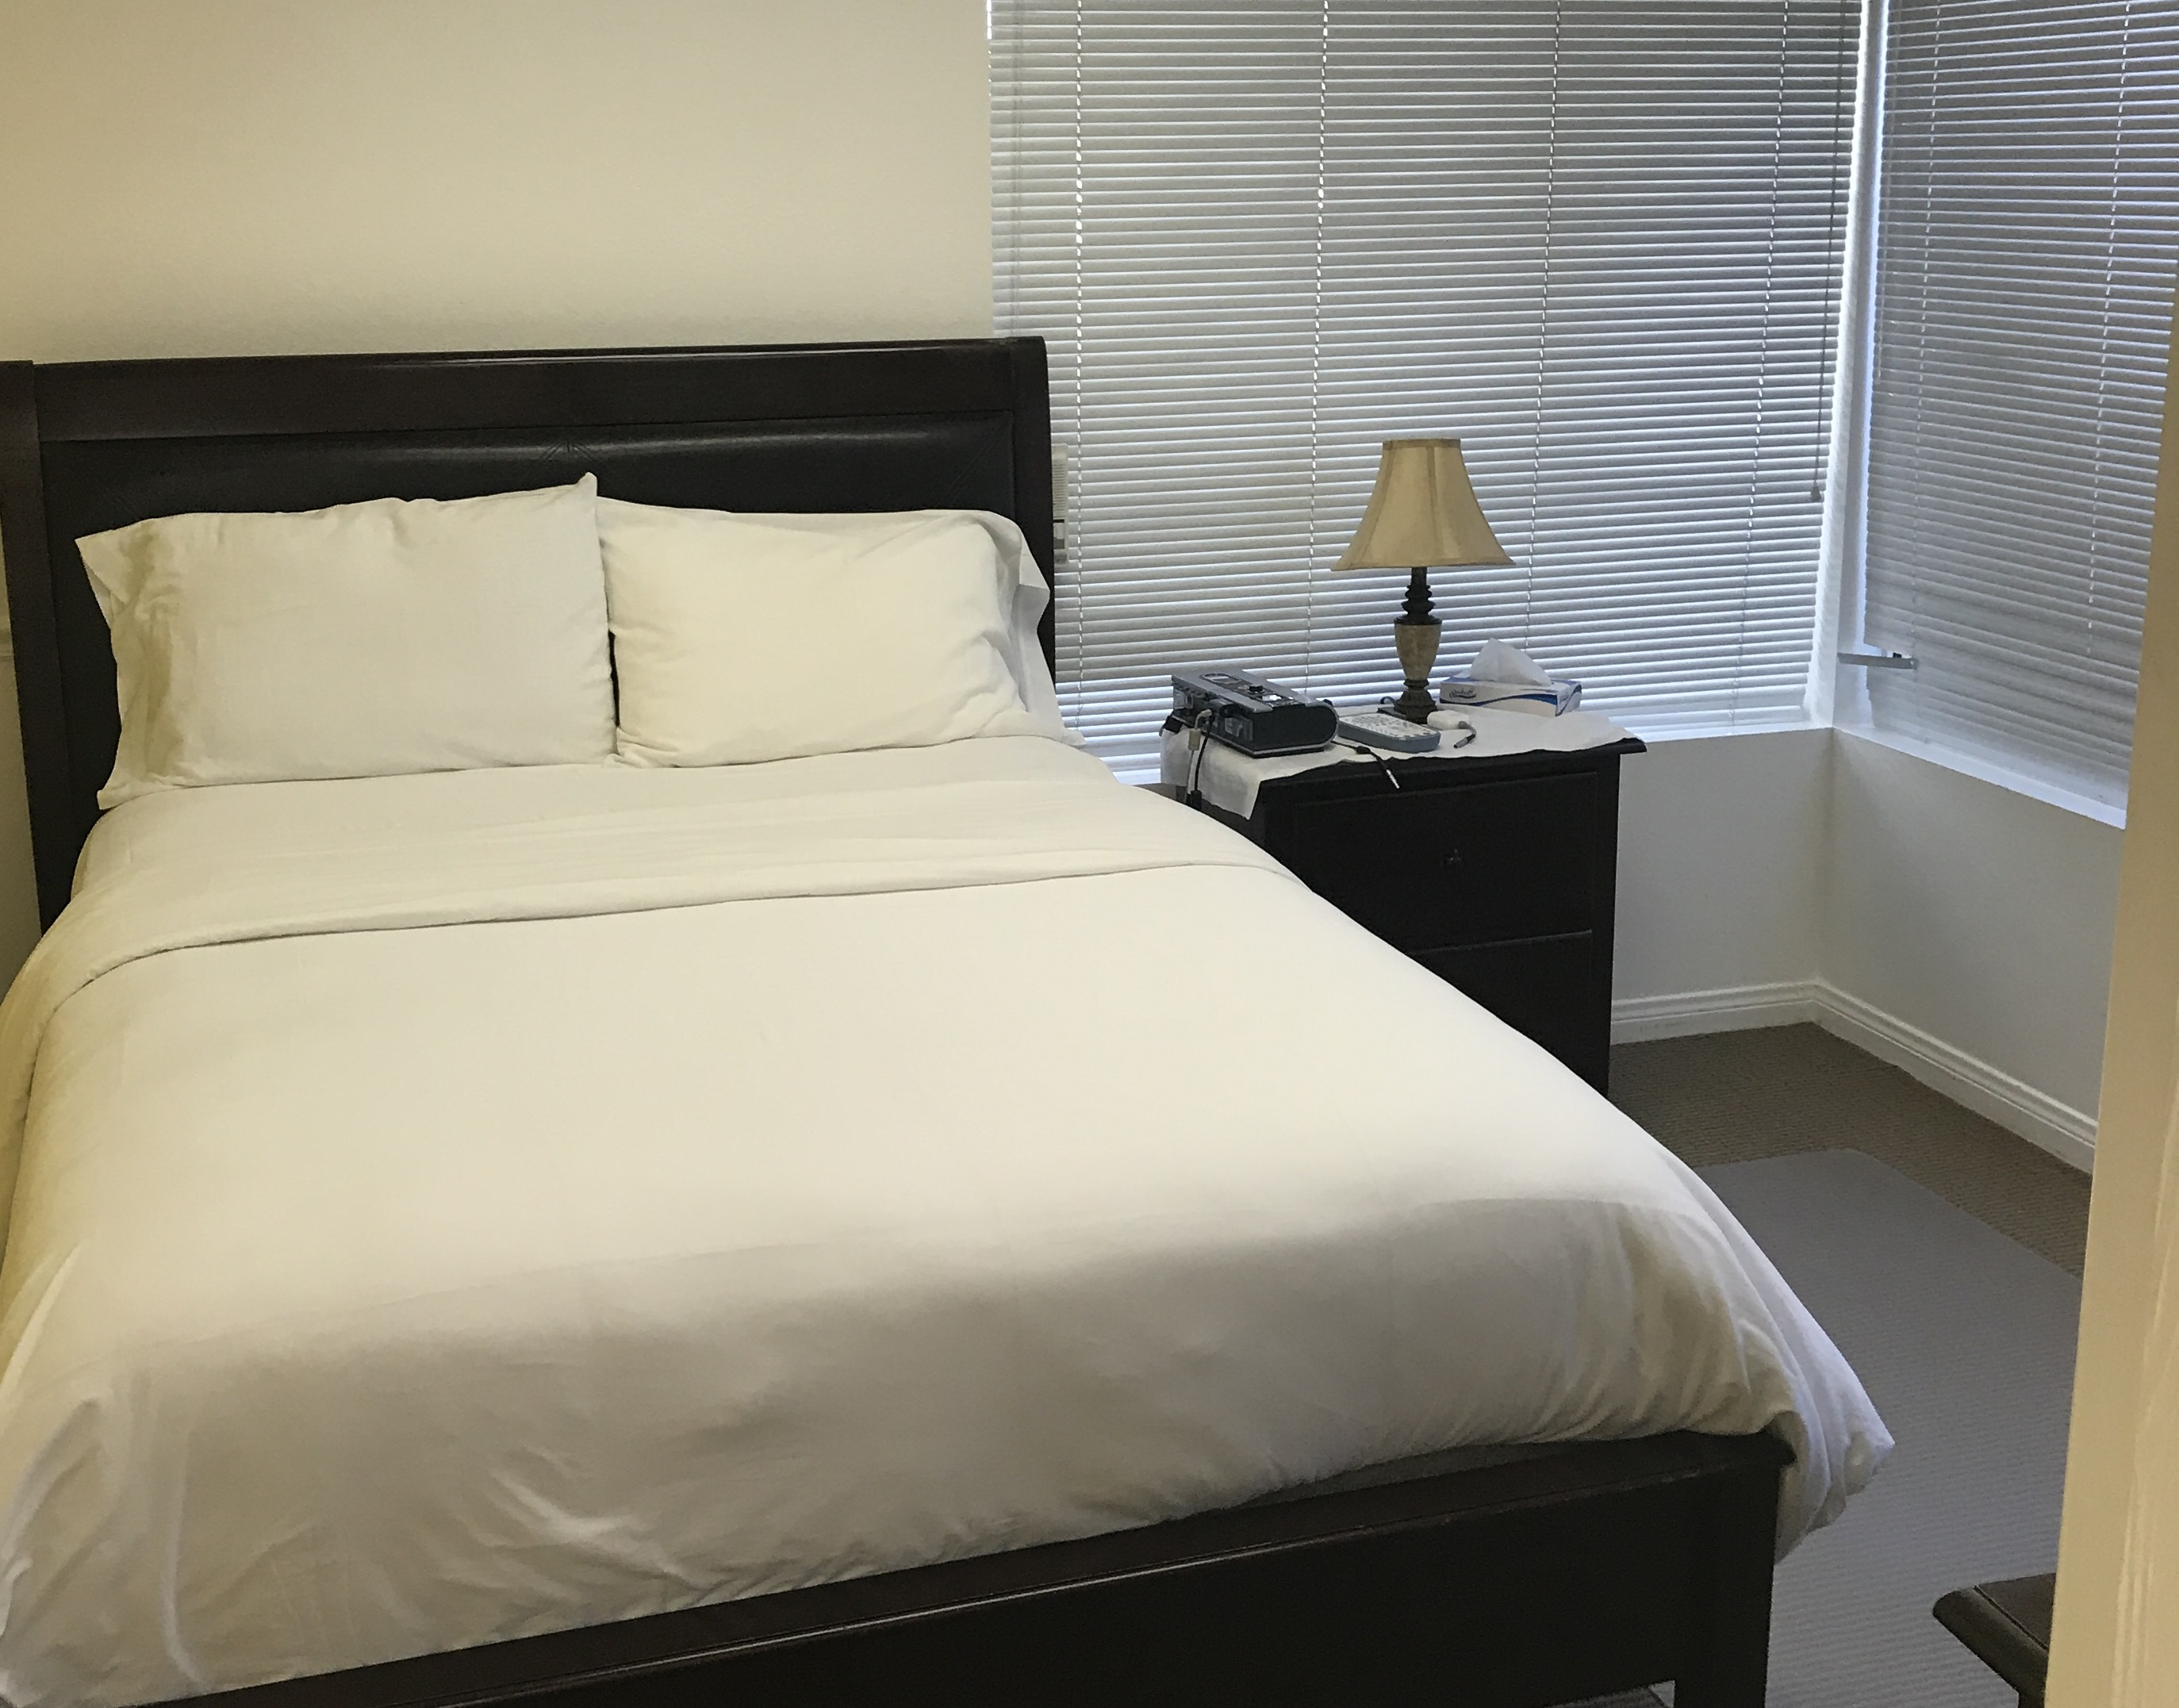 Garden Grove sleep center - Advanced Sleep Medicine Services - Room